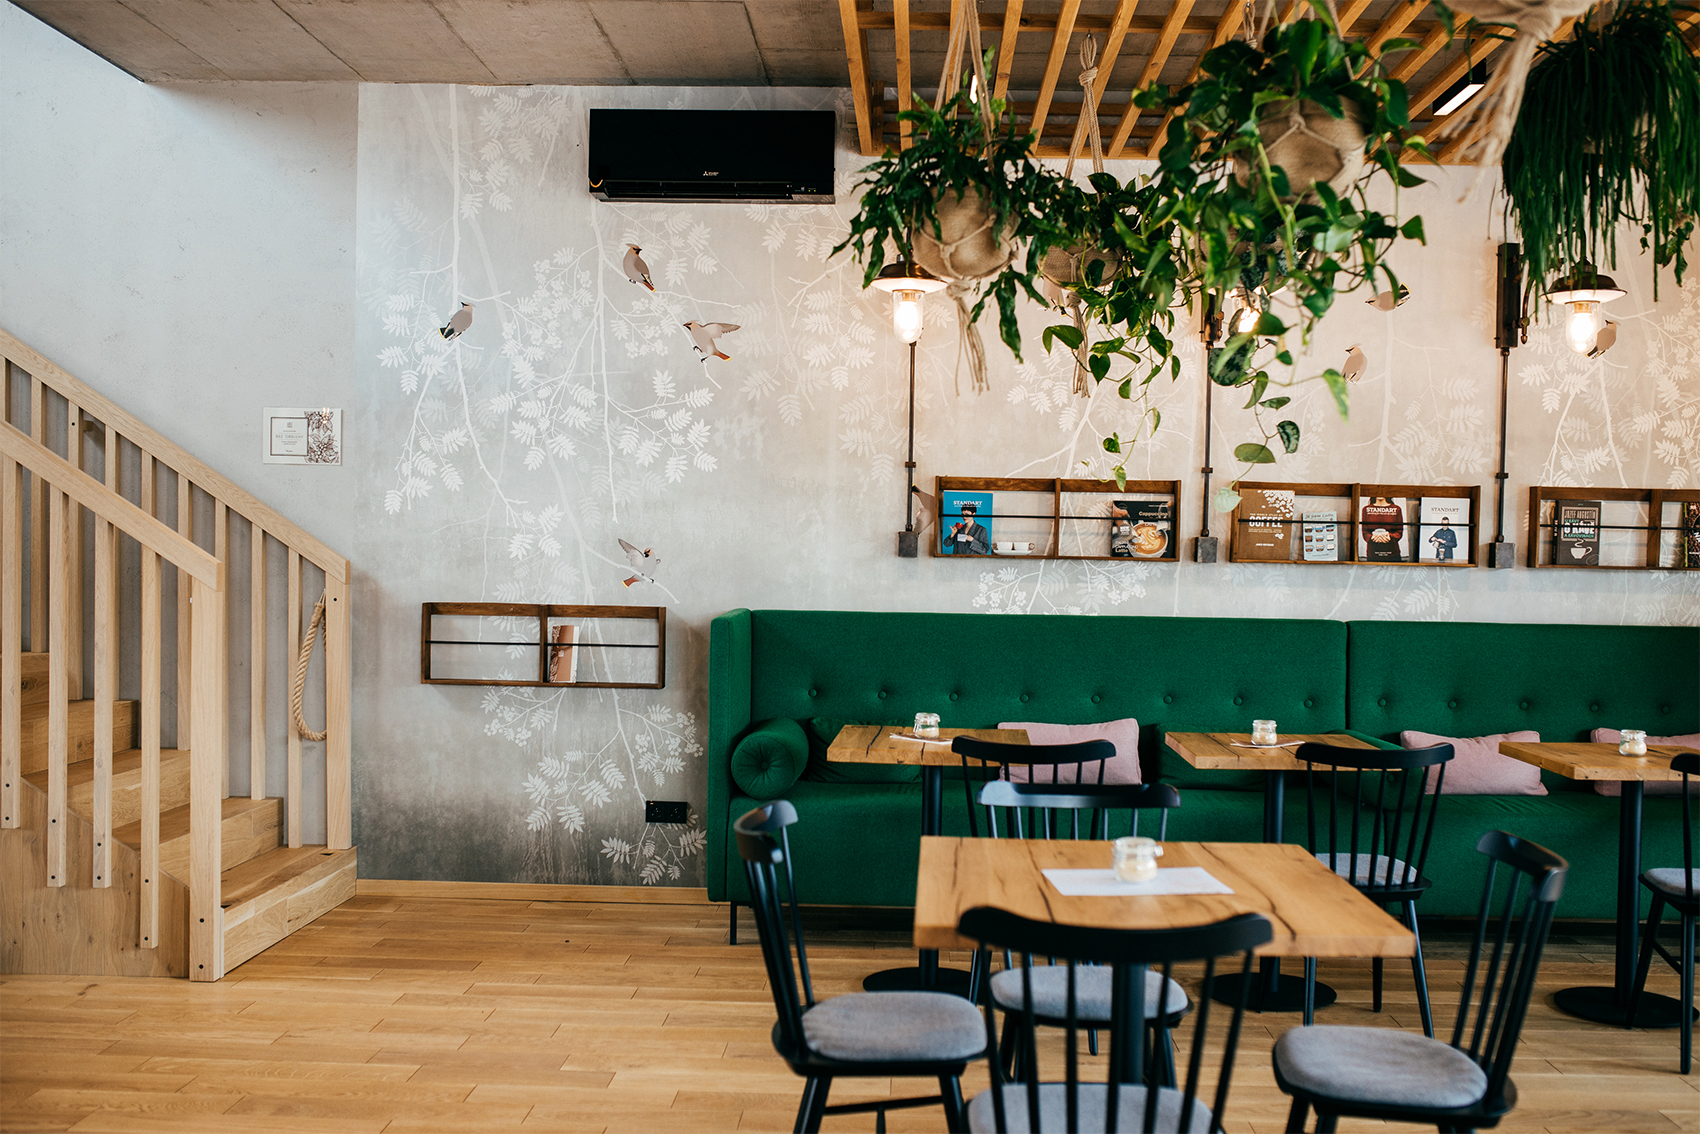 Seating area with plants hanging